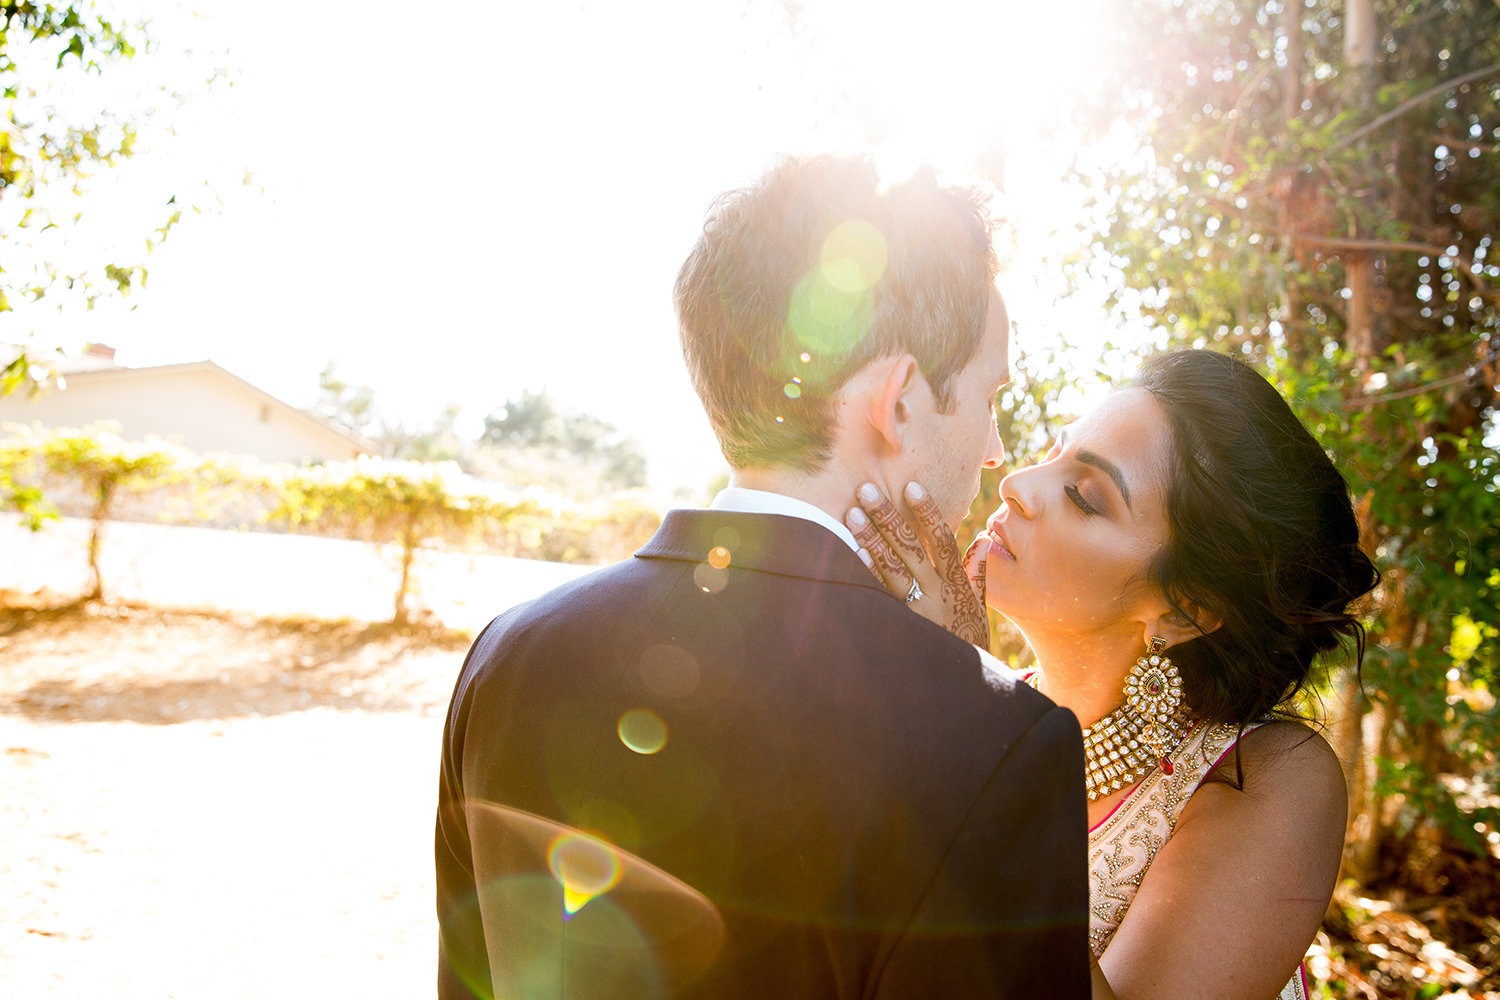 Artistic lens flare for a romantic portrait